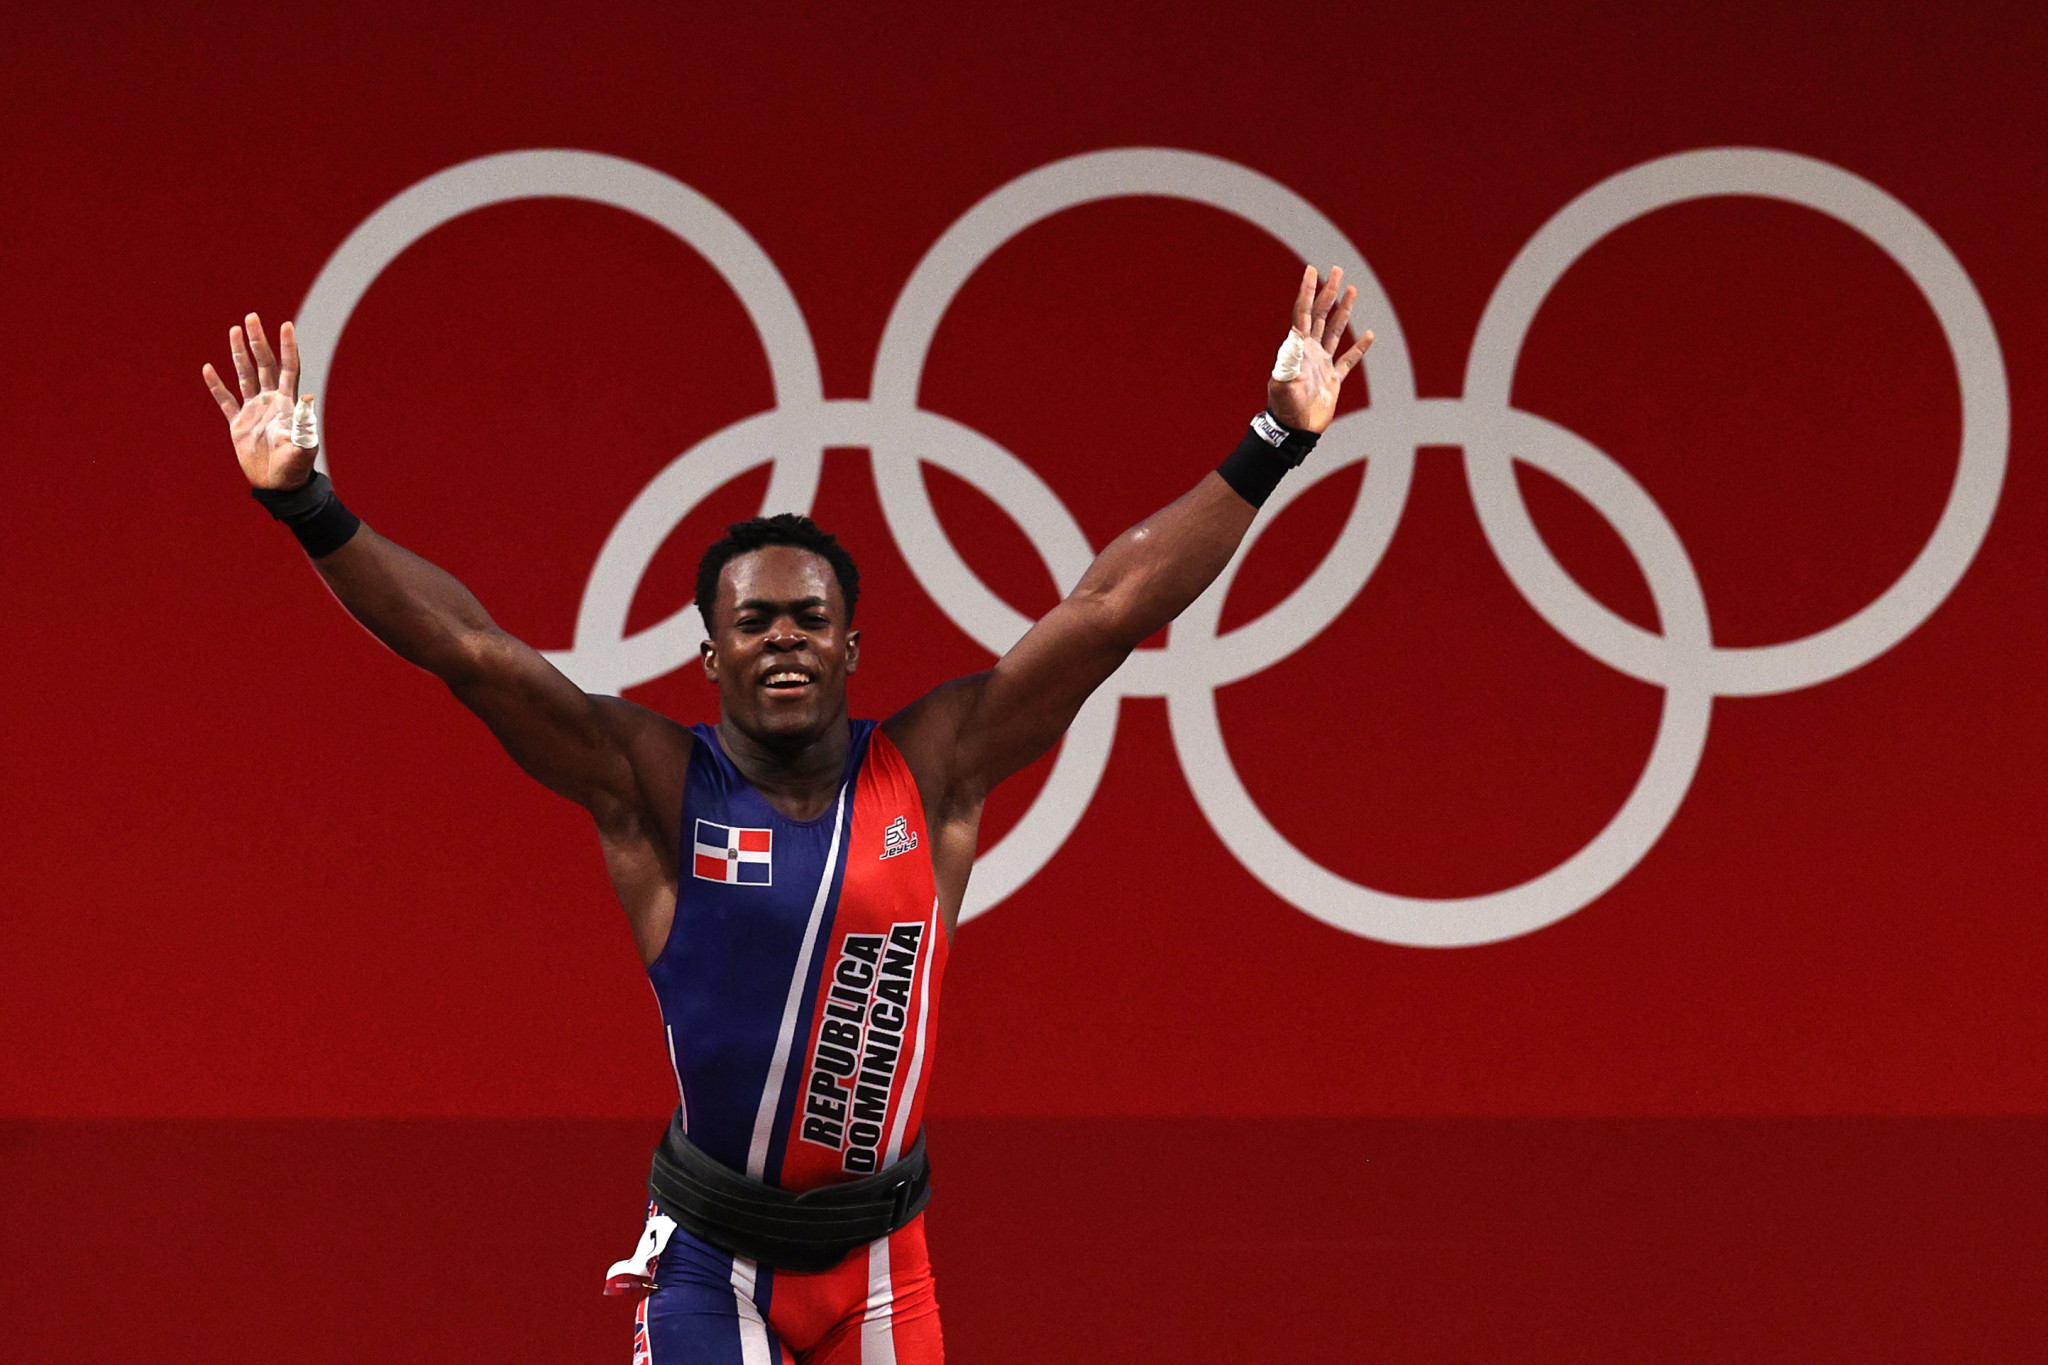 Zacarias Bonnat became the first ever weightlifting medallist from the Dominican Republic when he won silver in the 81kg category at the Tokyo 2020 Olympic Games ©Getty Images